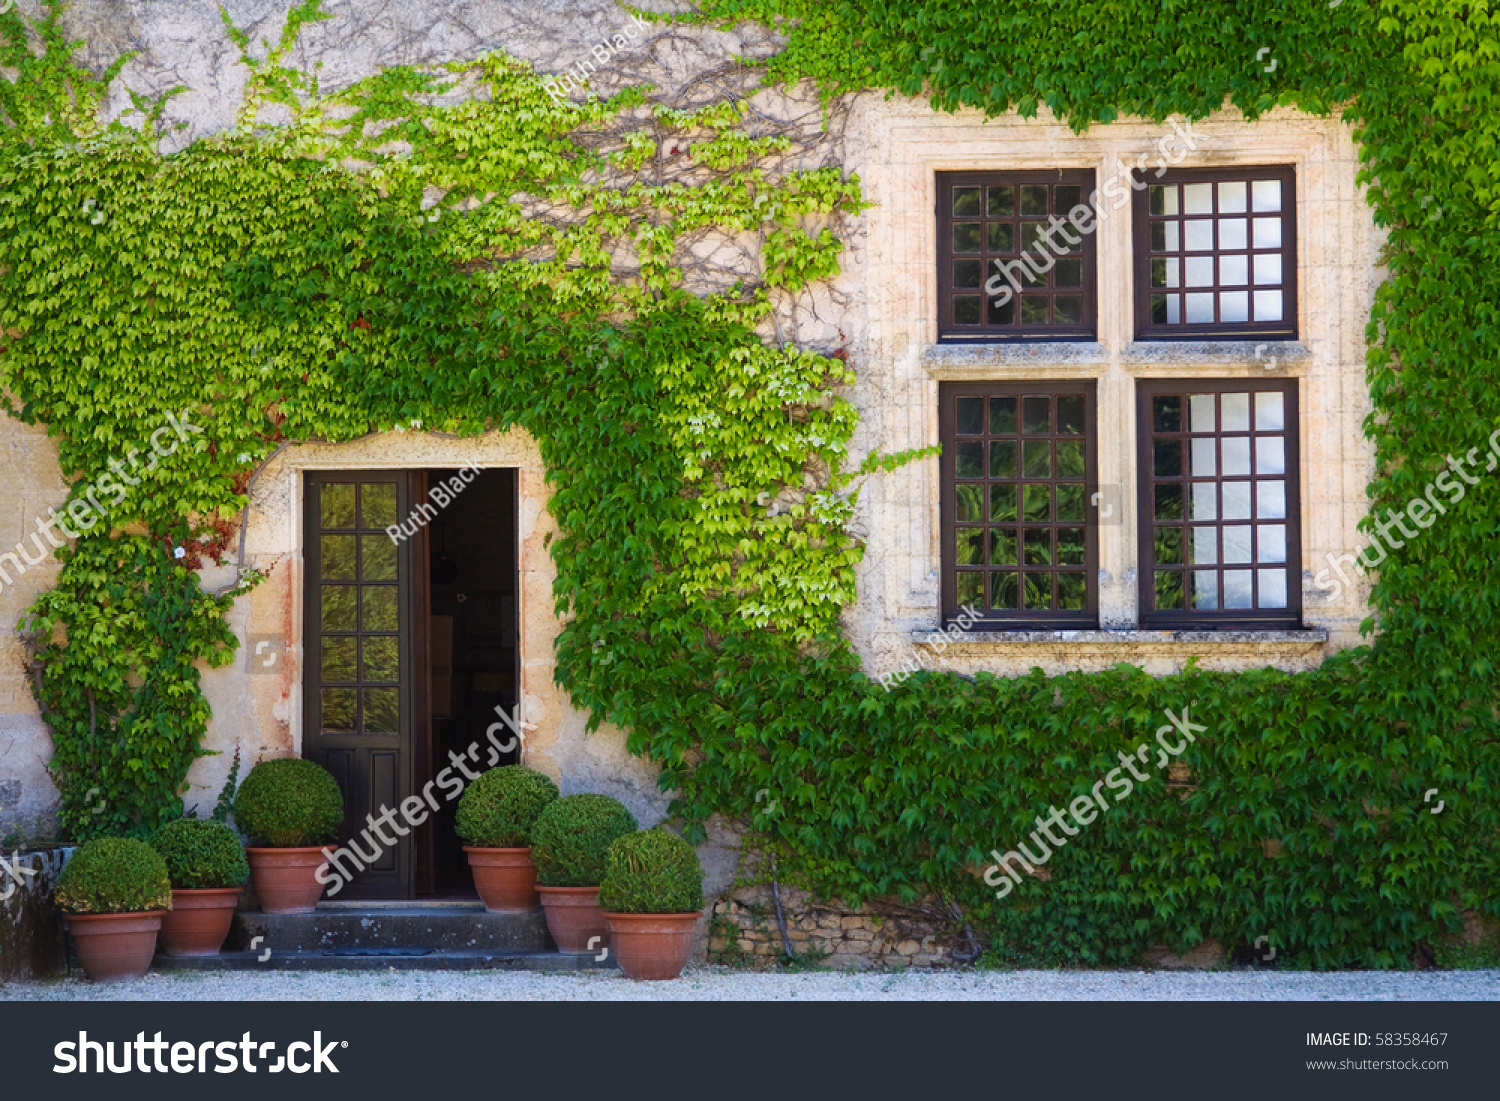 Ivy clad house photographed in the dordogne region of france stock photo 58358467 shutterstock - The shutter clad house ...